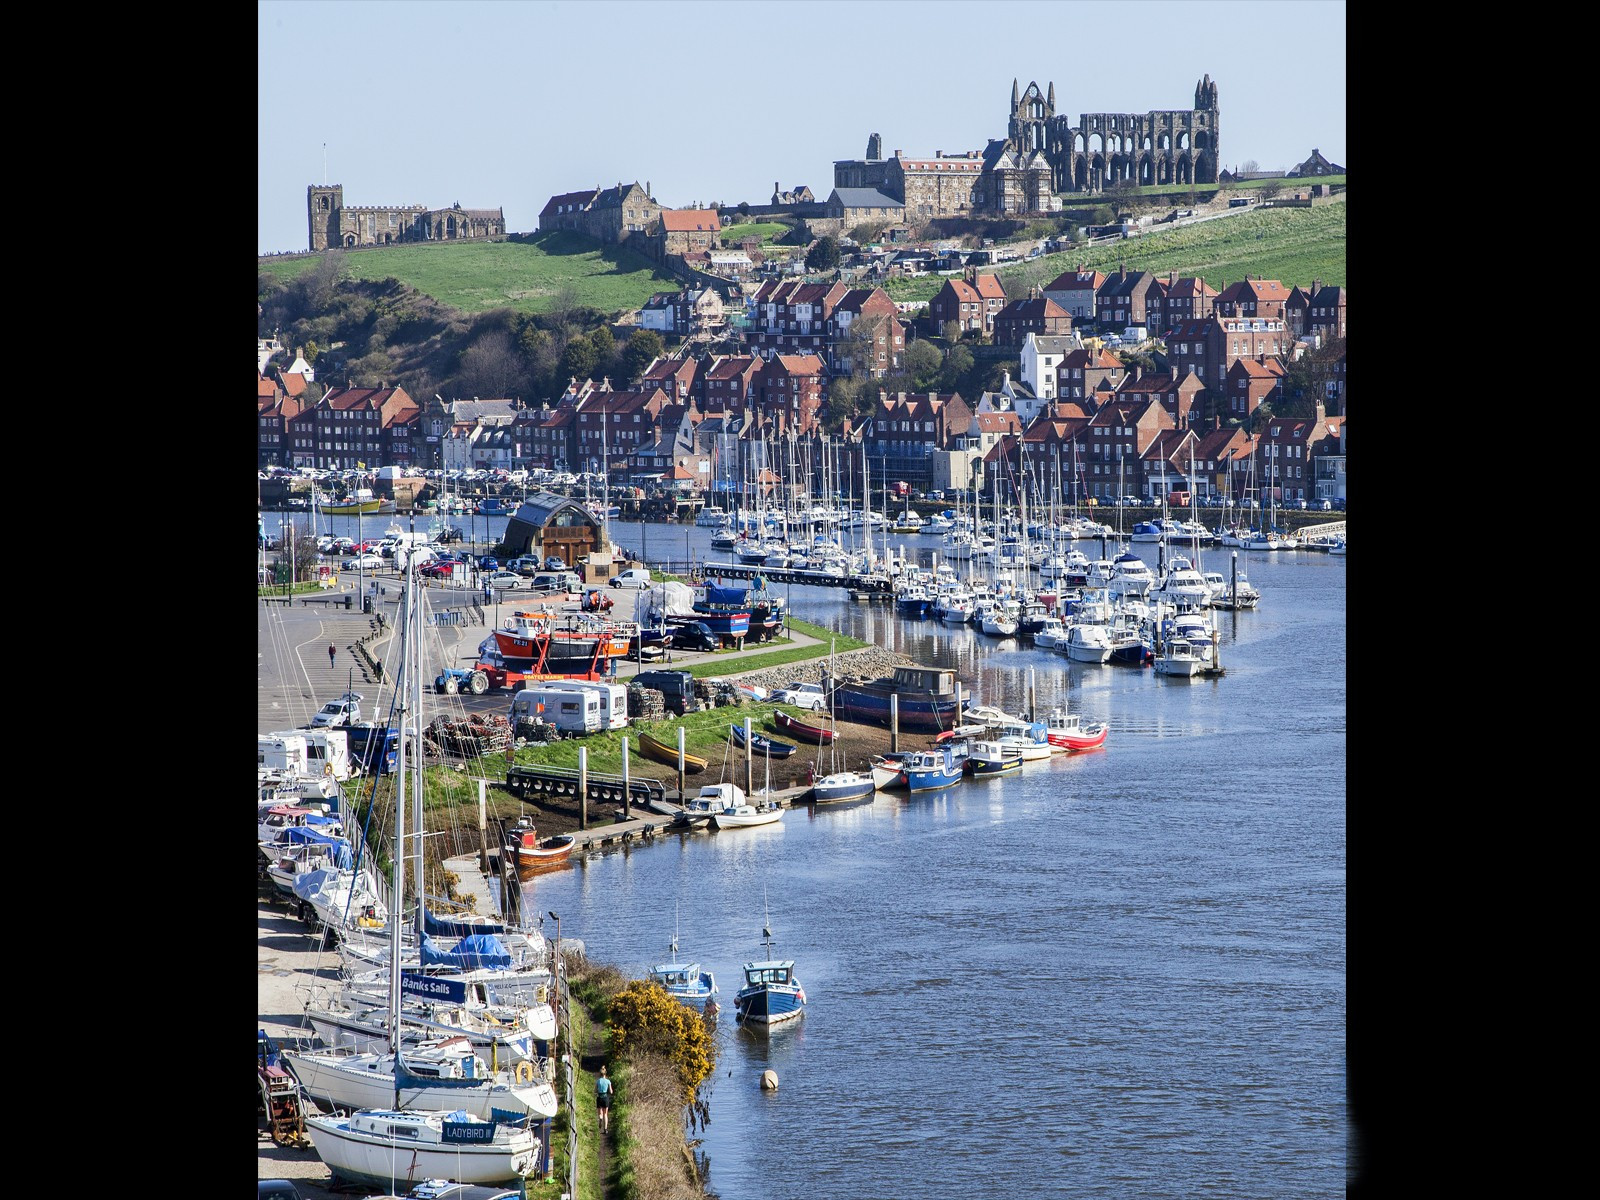 4. Whitby